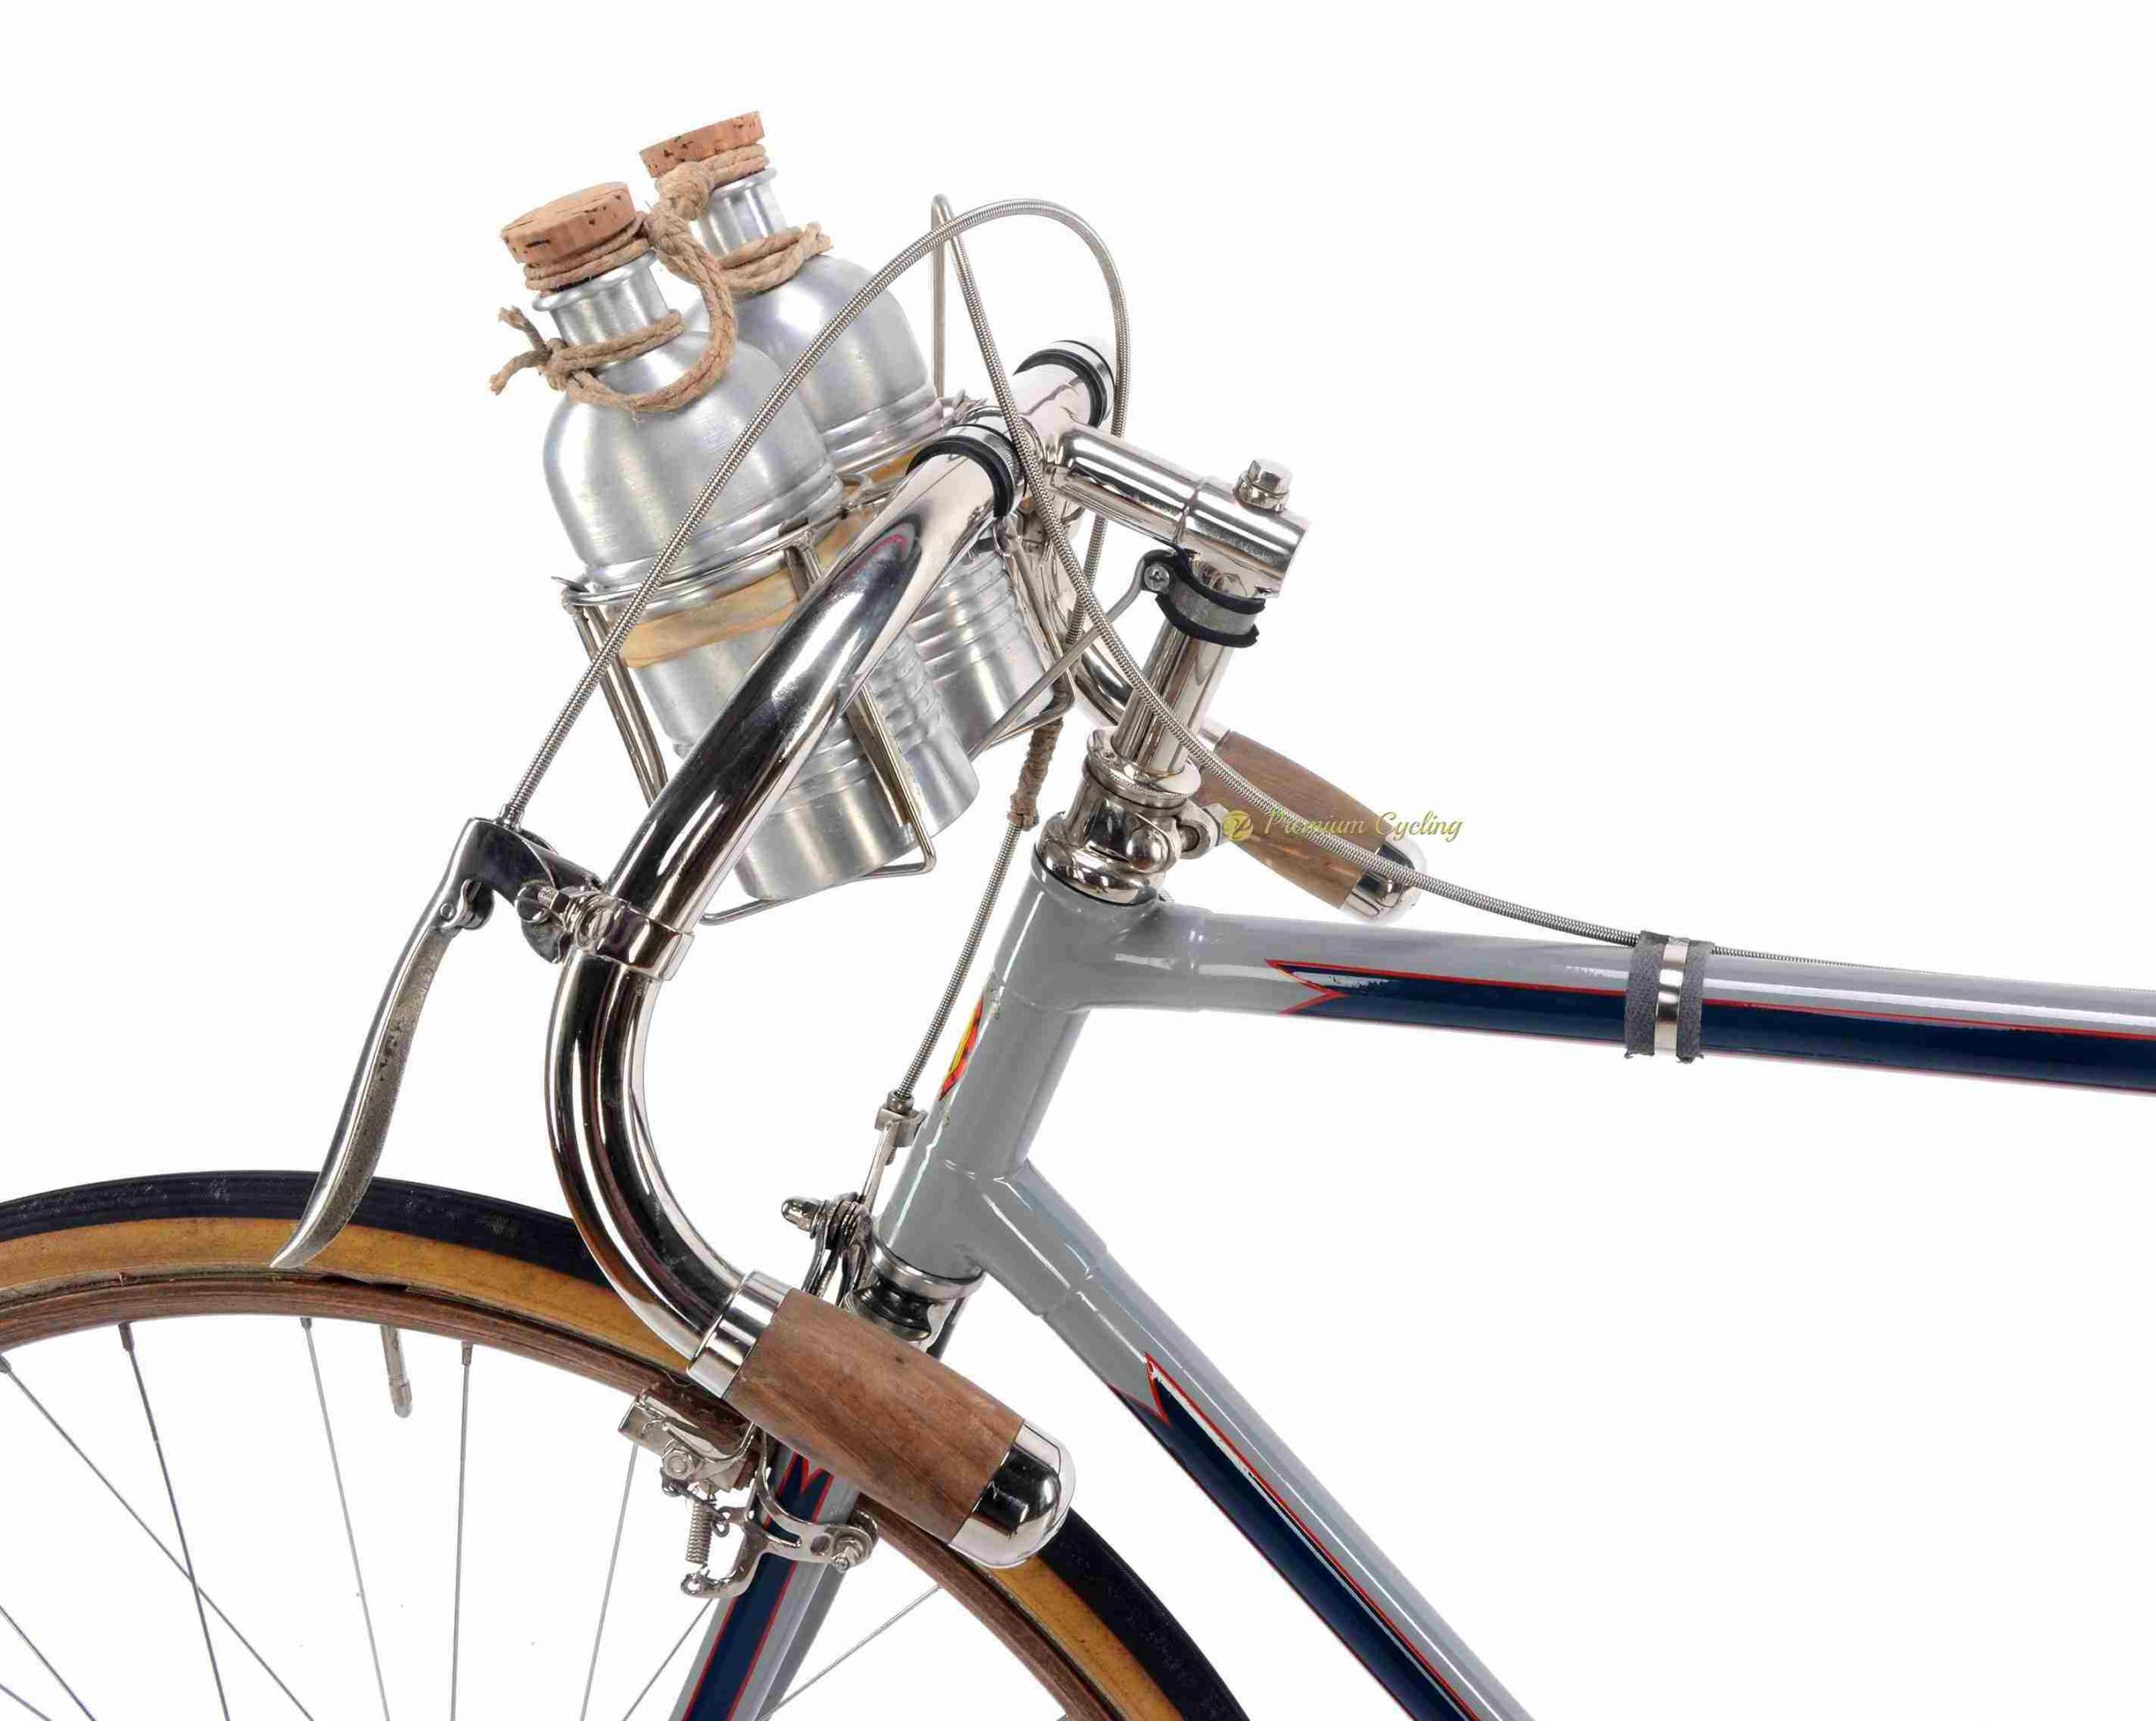 B S A Birmingham Racing Bike 57 5cm 1915 Sold Premium Cycling Website For Steel And Collectible Vintage Bikes Parts And Clothing